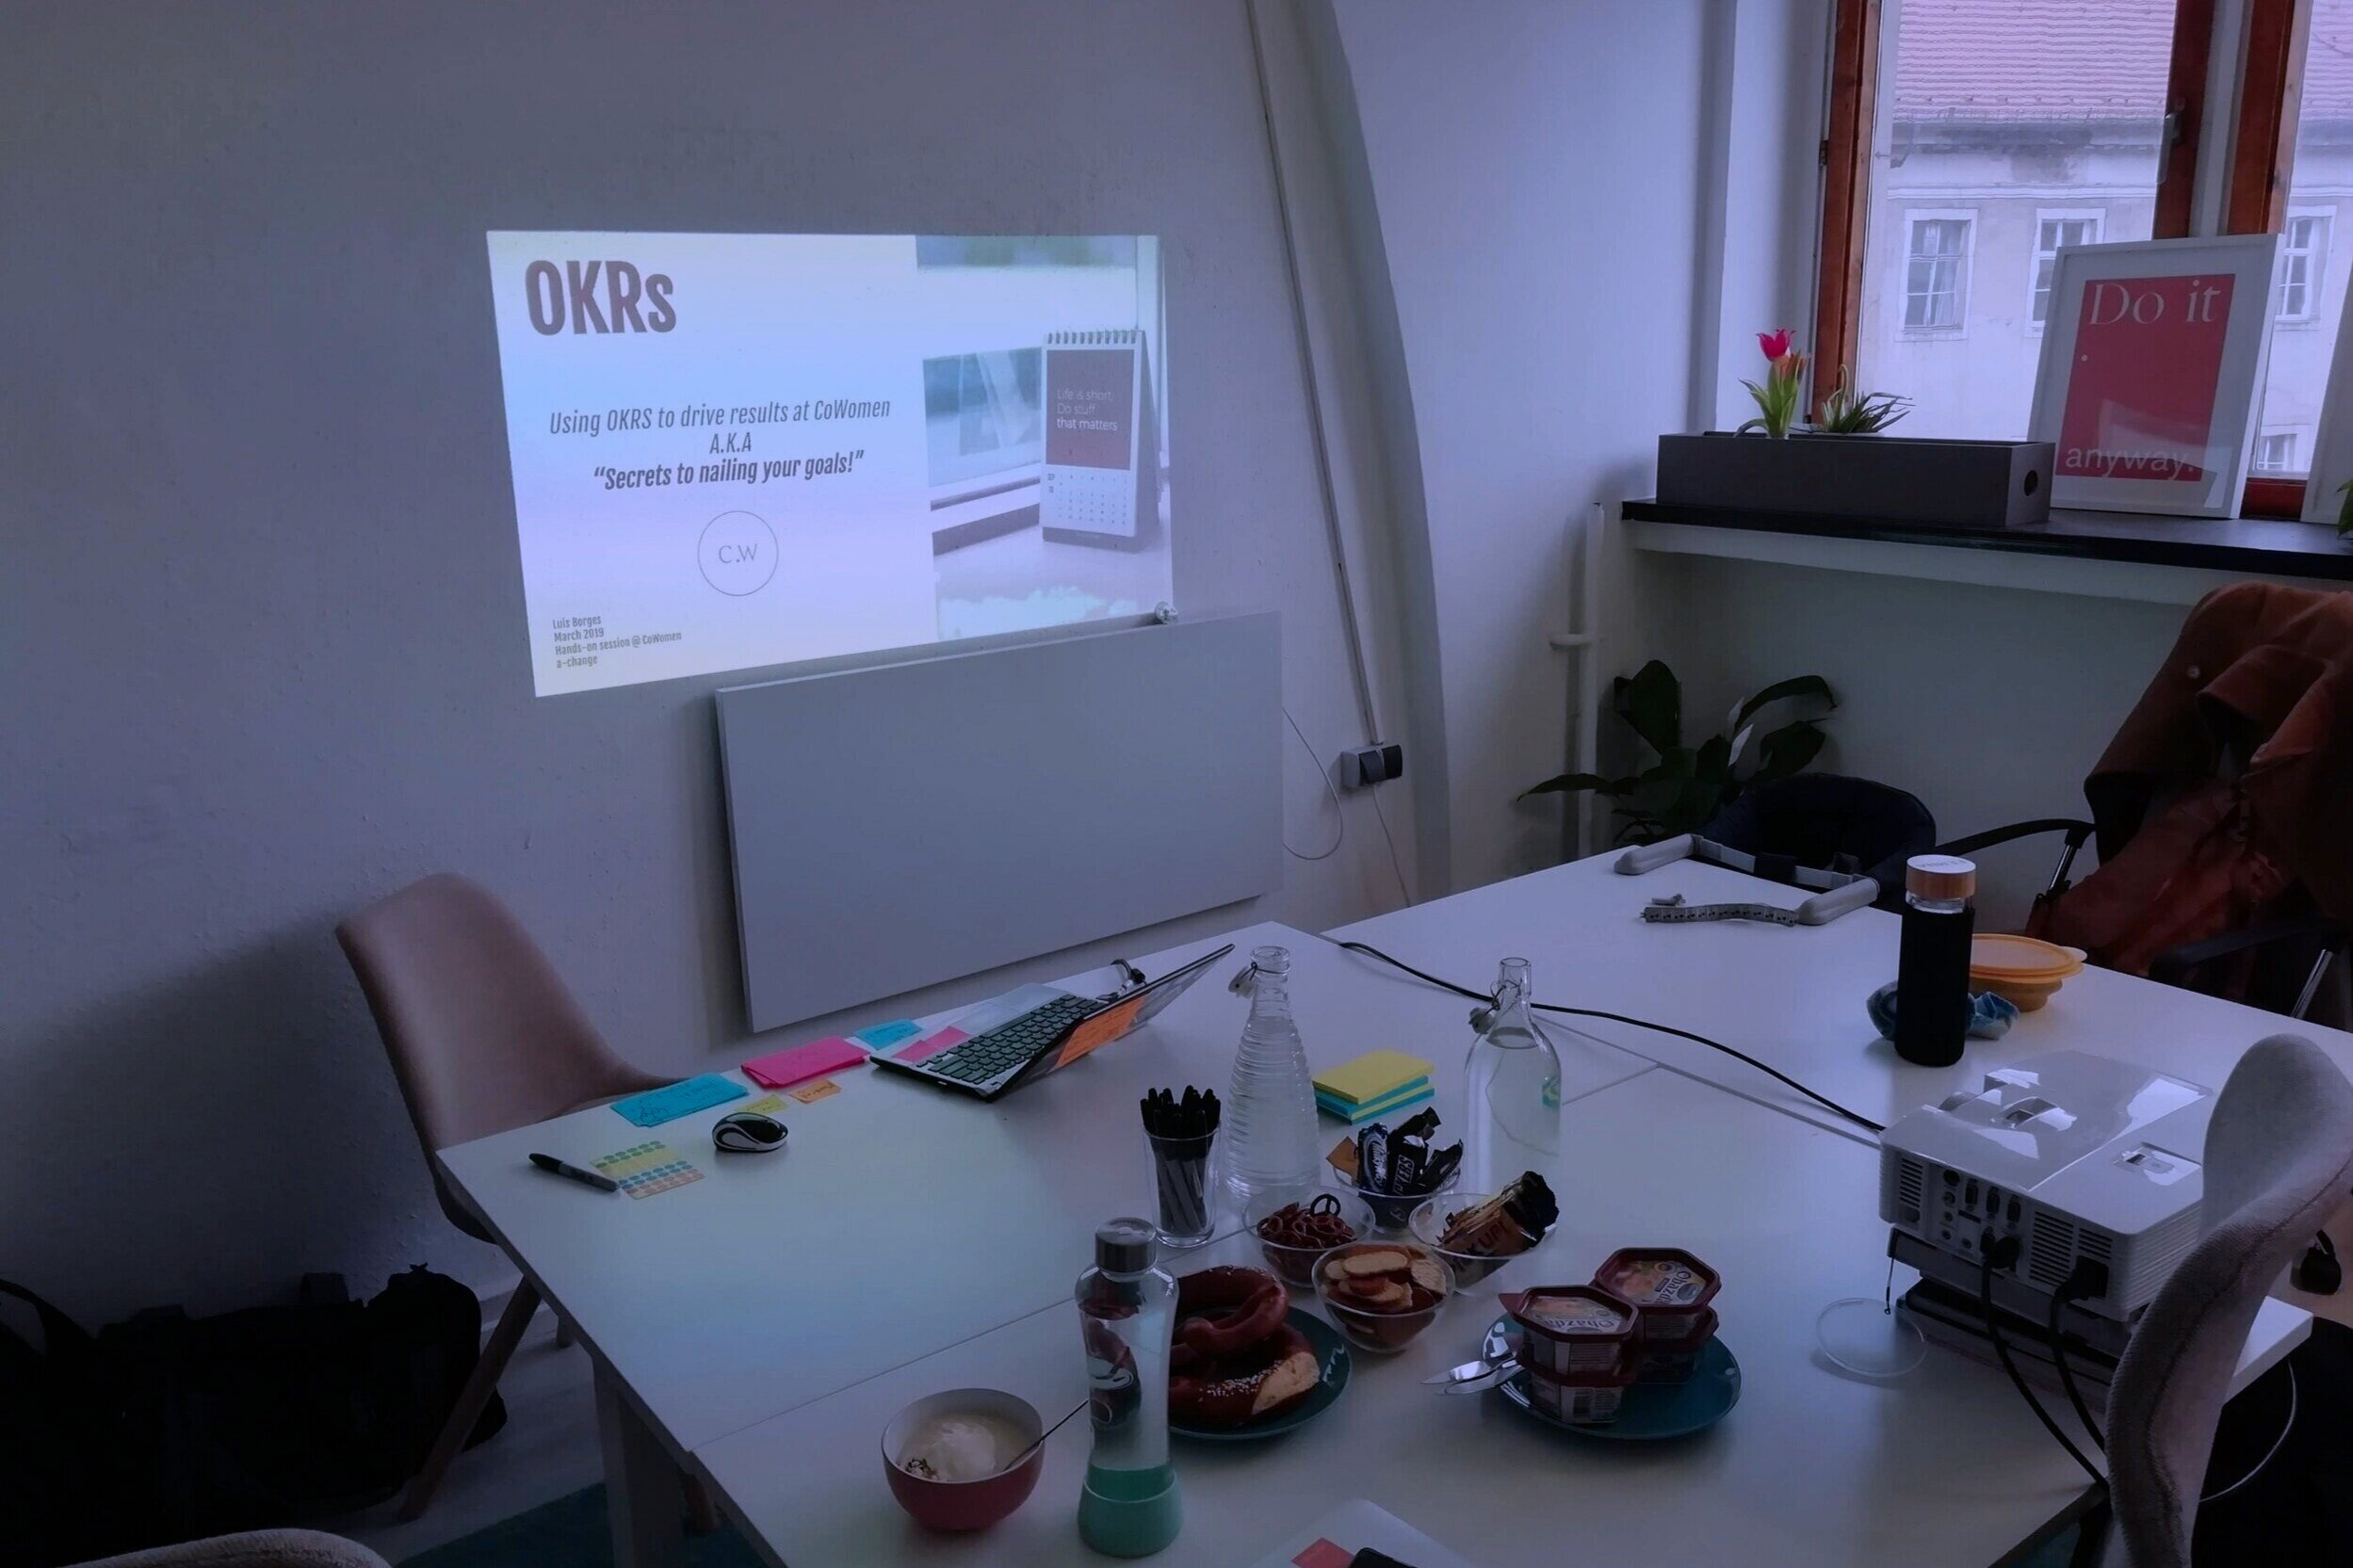 OKRs Implementationwith CoWomen -